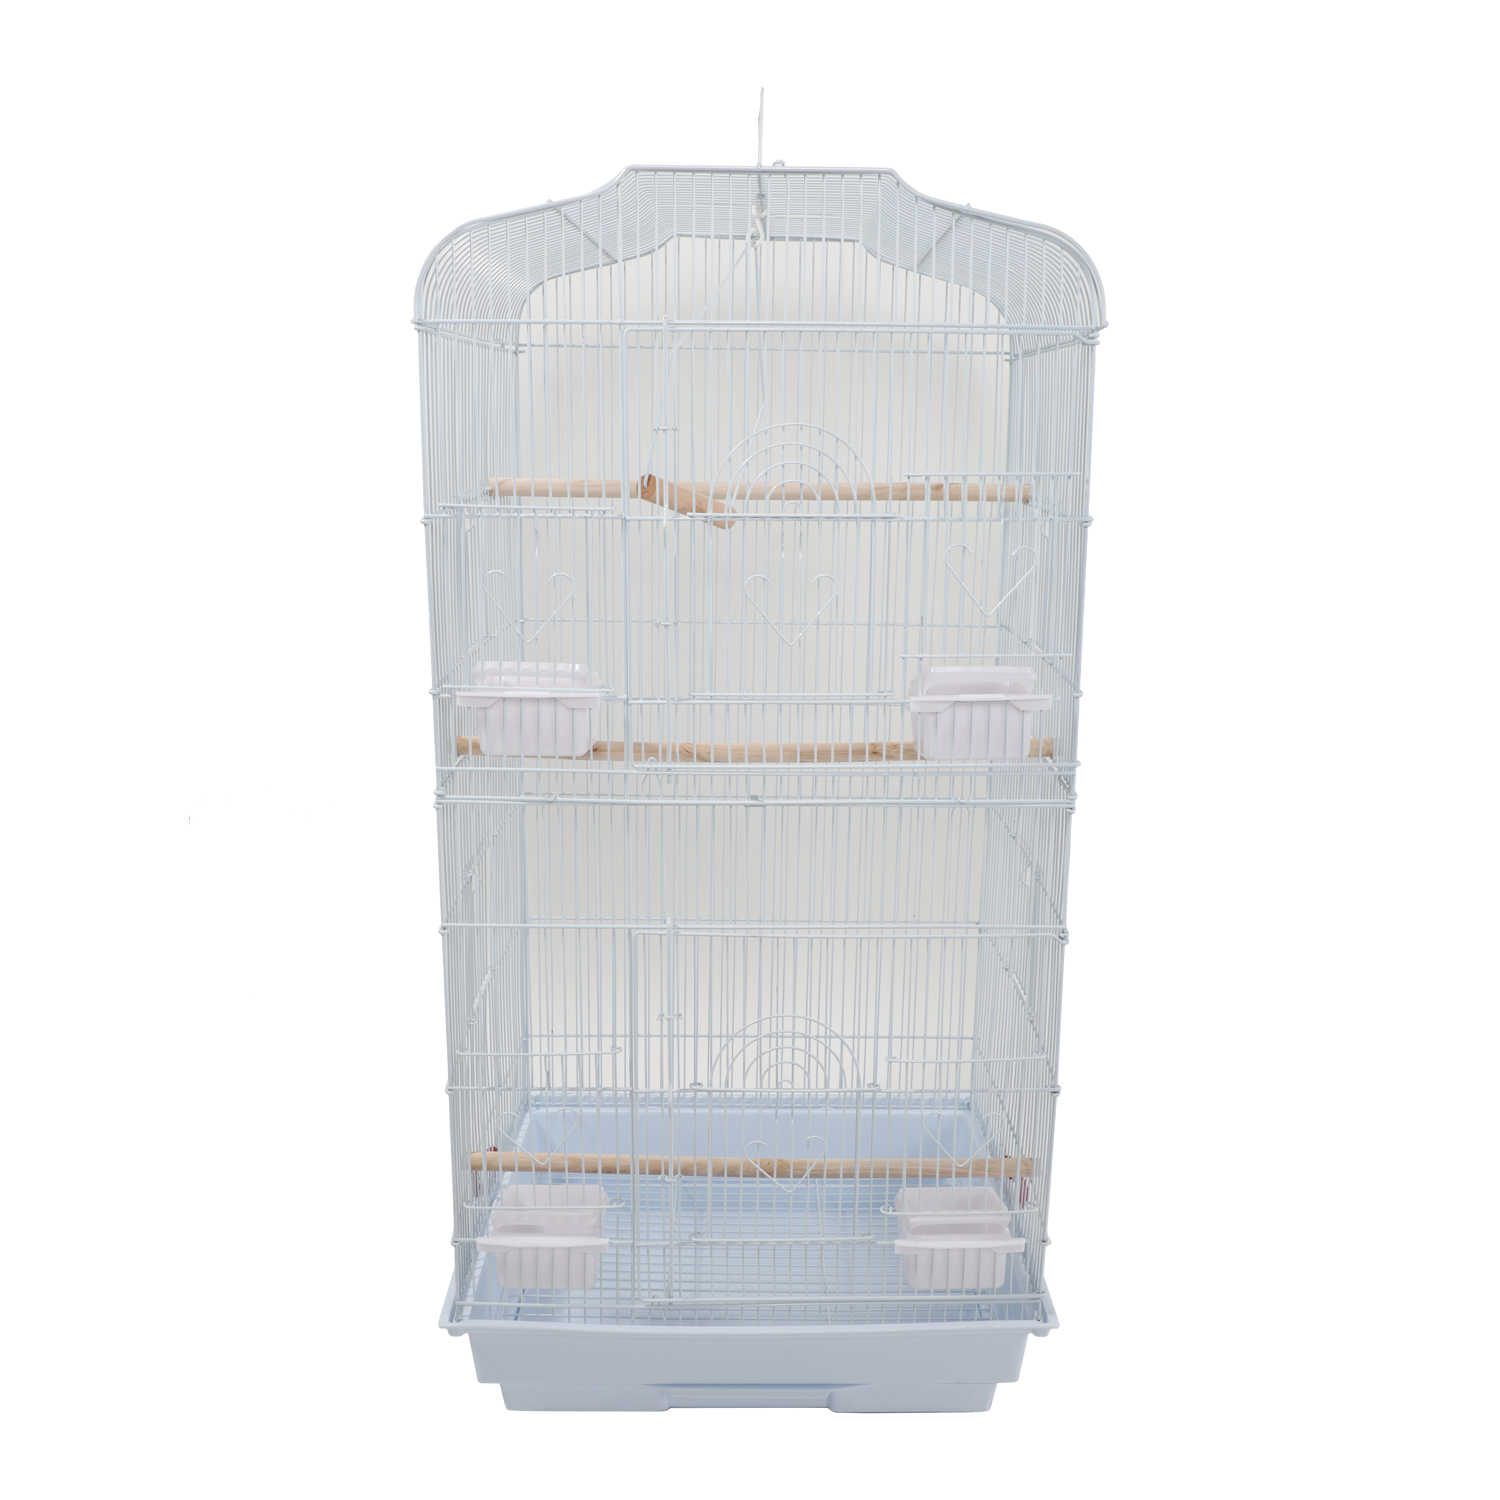 "37"" Large Bird Cages Parrots Canary Parakeet Cockatiel LoveBird Finch Bird Cage with Wood Perches & Food Cups White - US Stock"